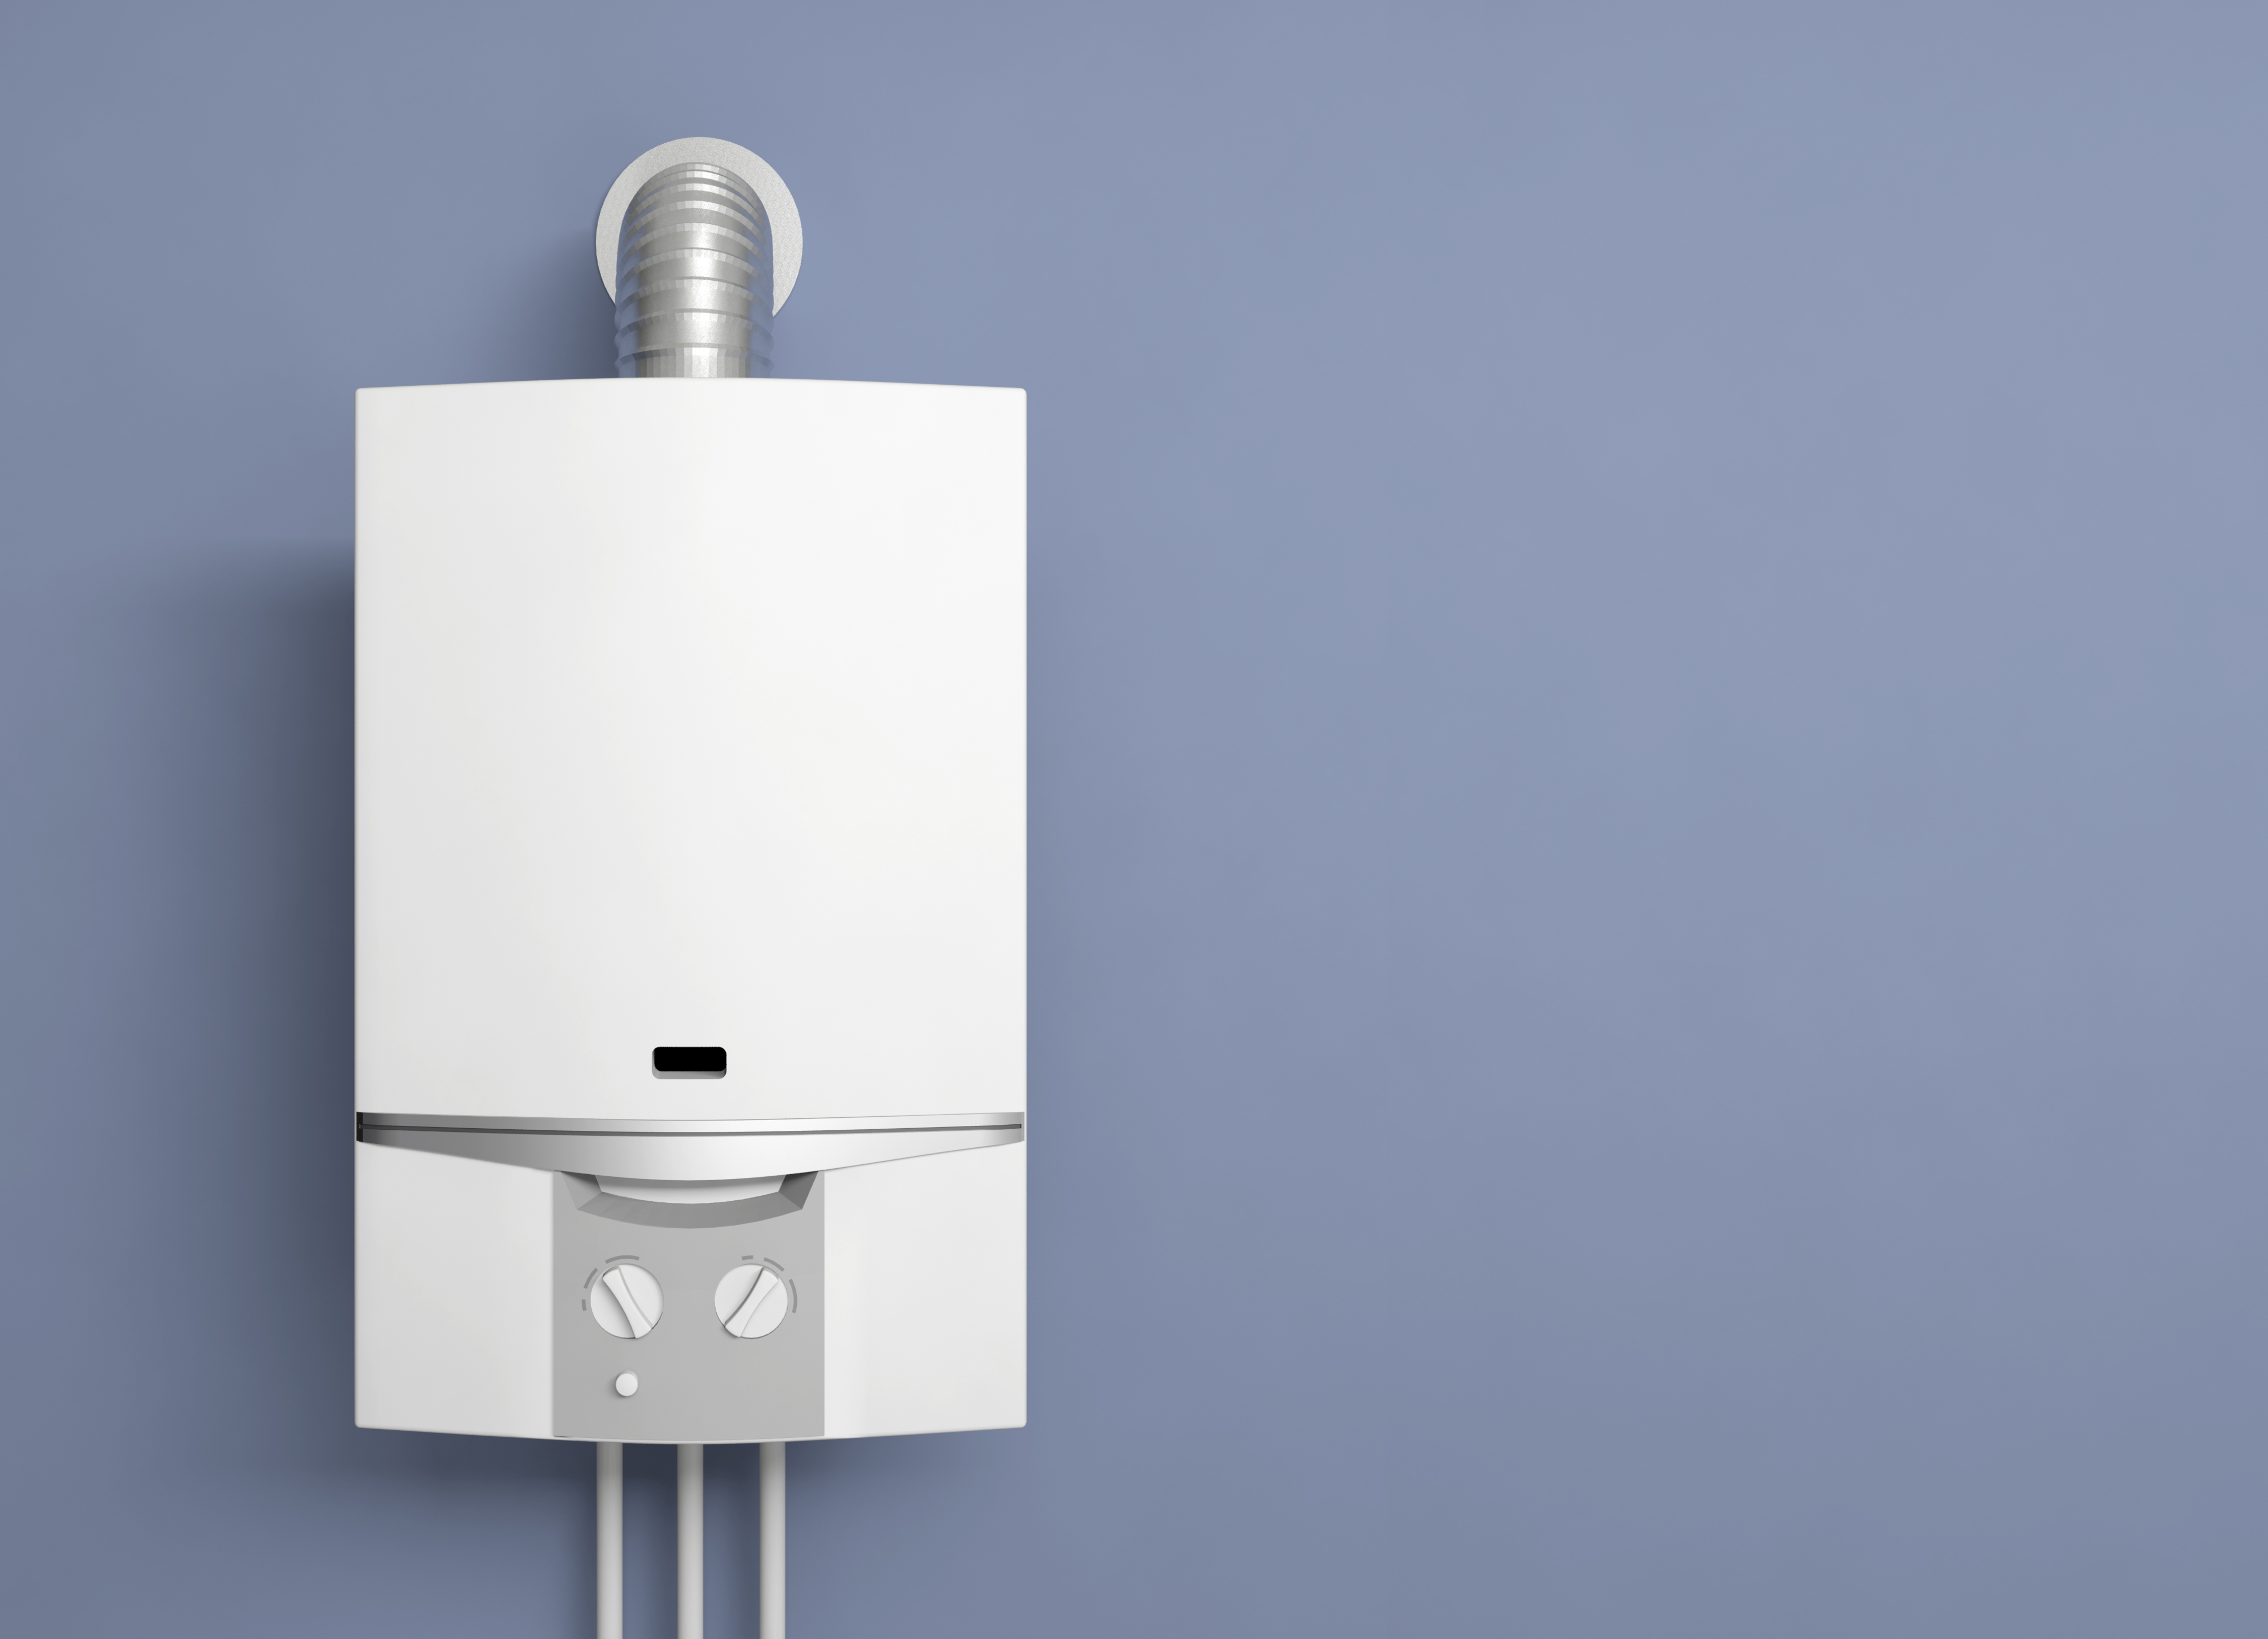 How to Troubleshoot Gas Wall Heaters | Home Guides | SF Gate